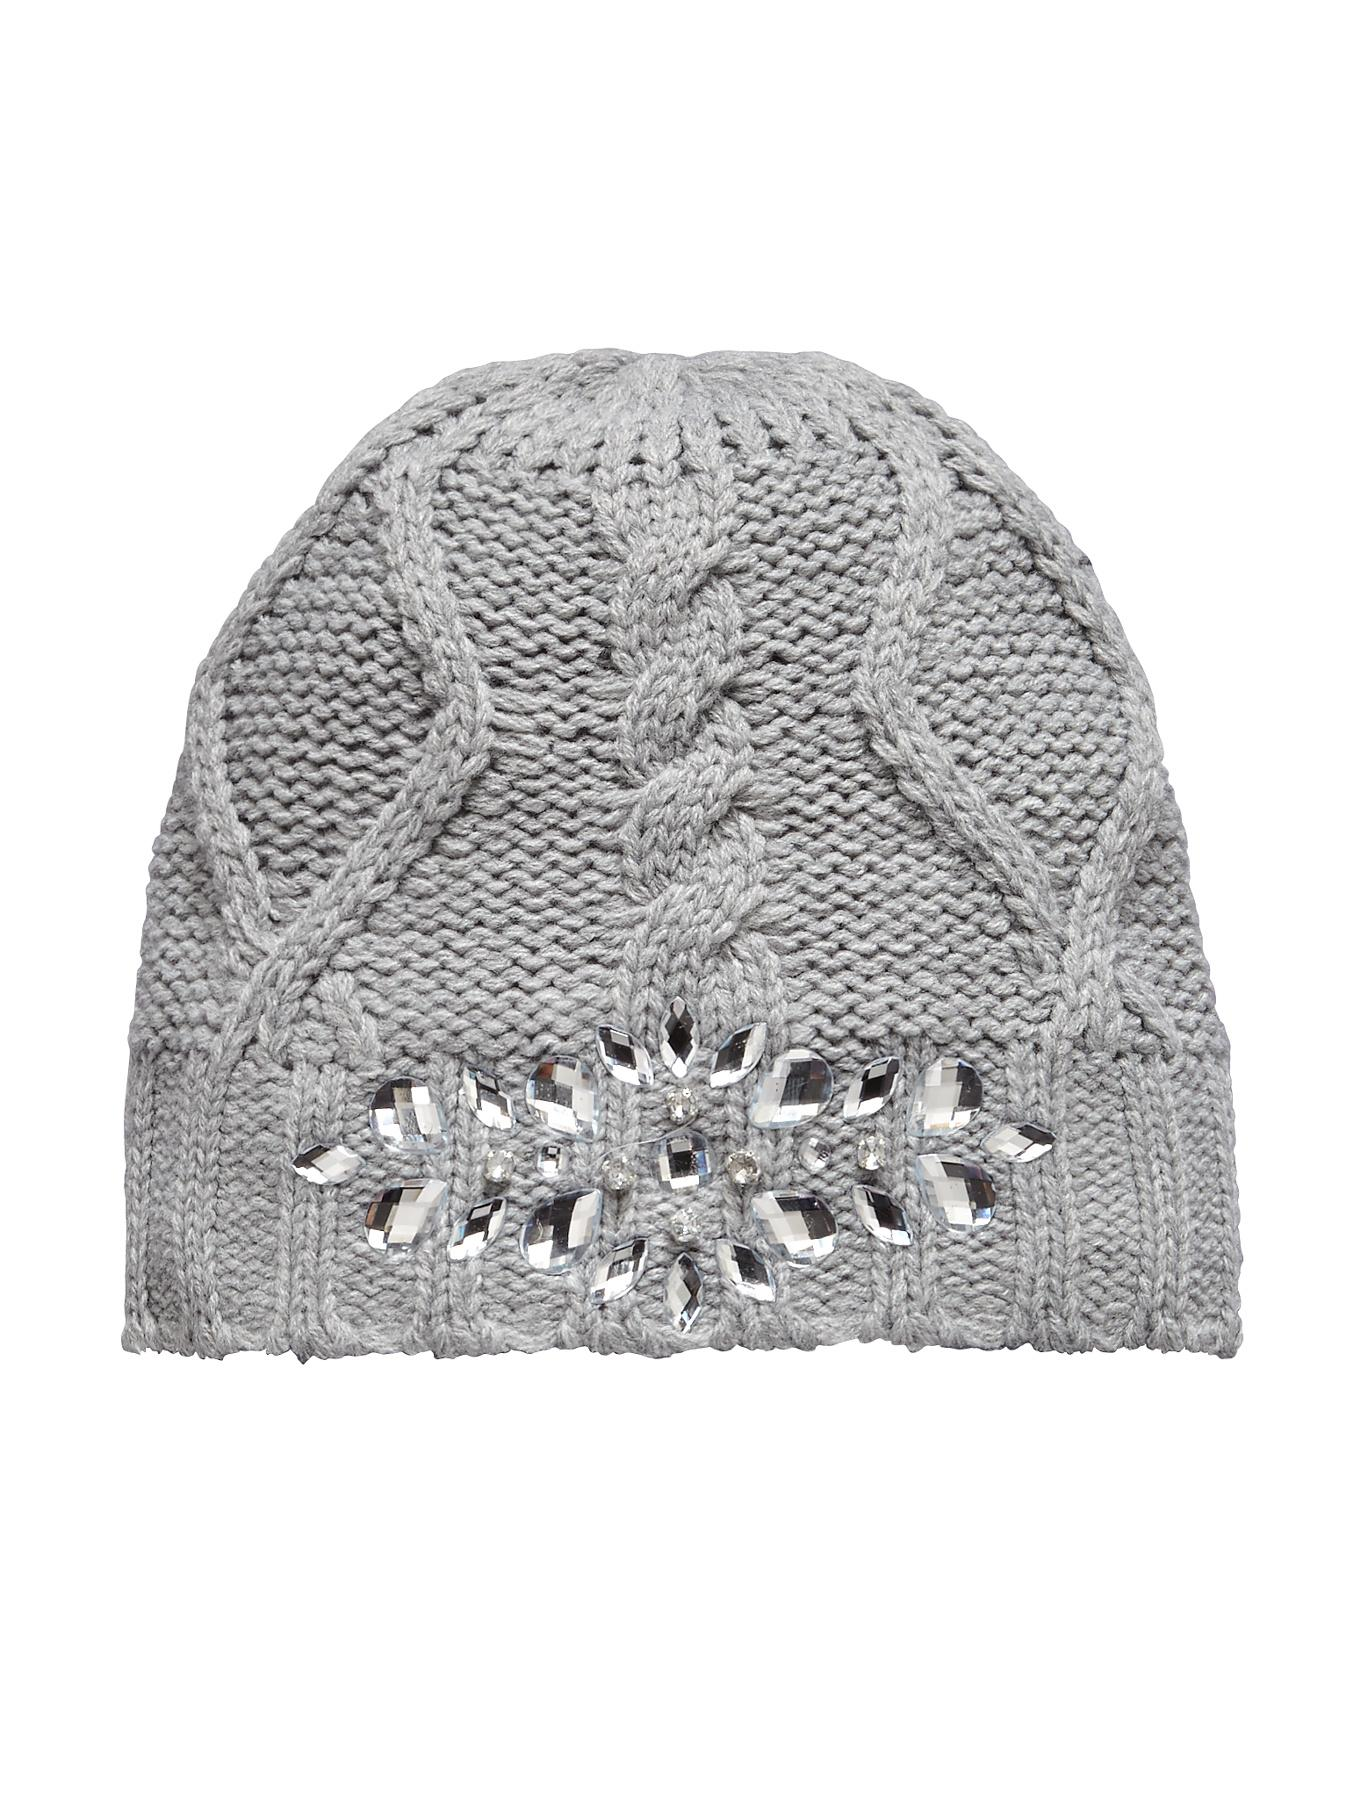 Jewelled Beanie Hat, Grey,Pink,Green at Littlewoods